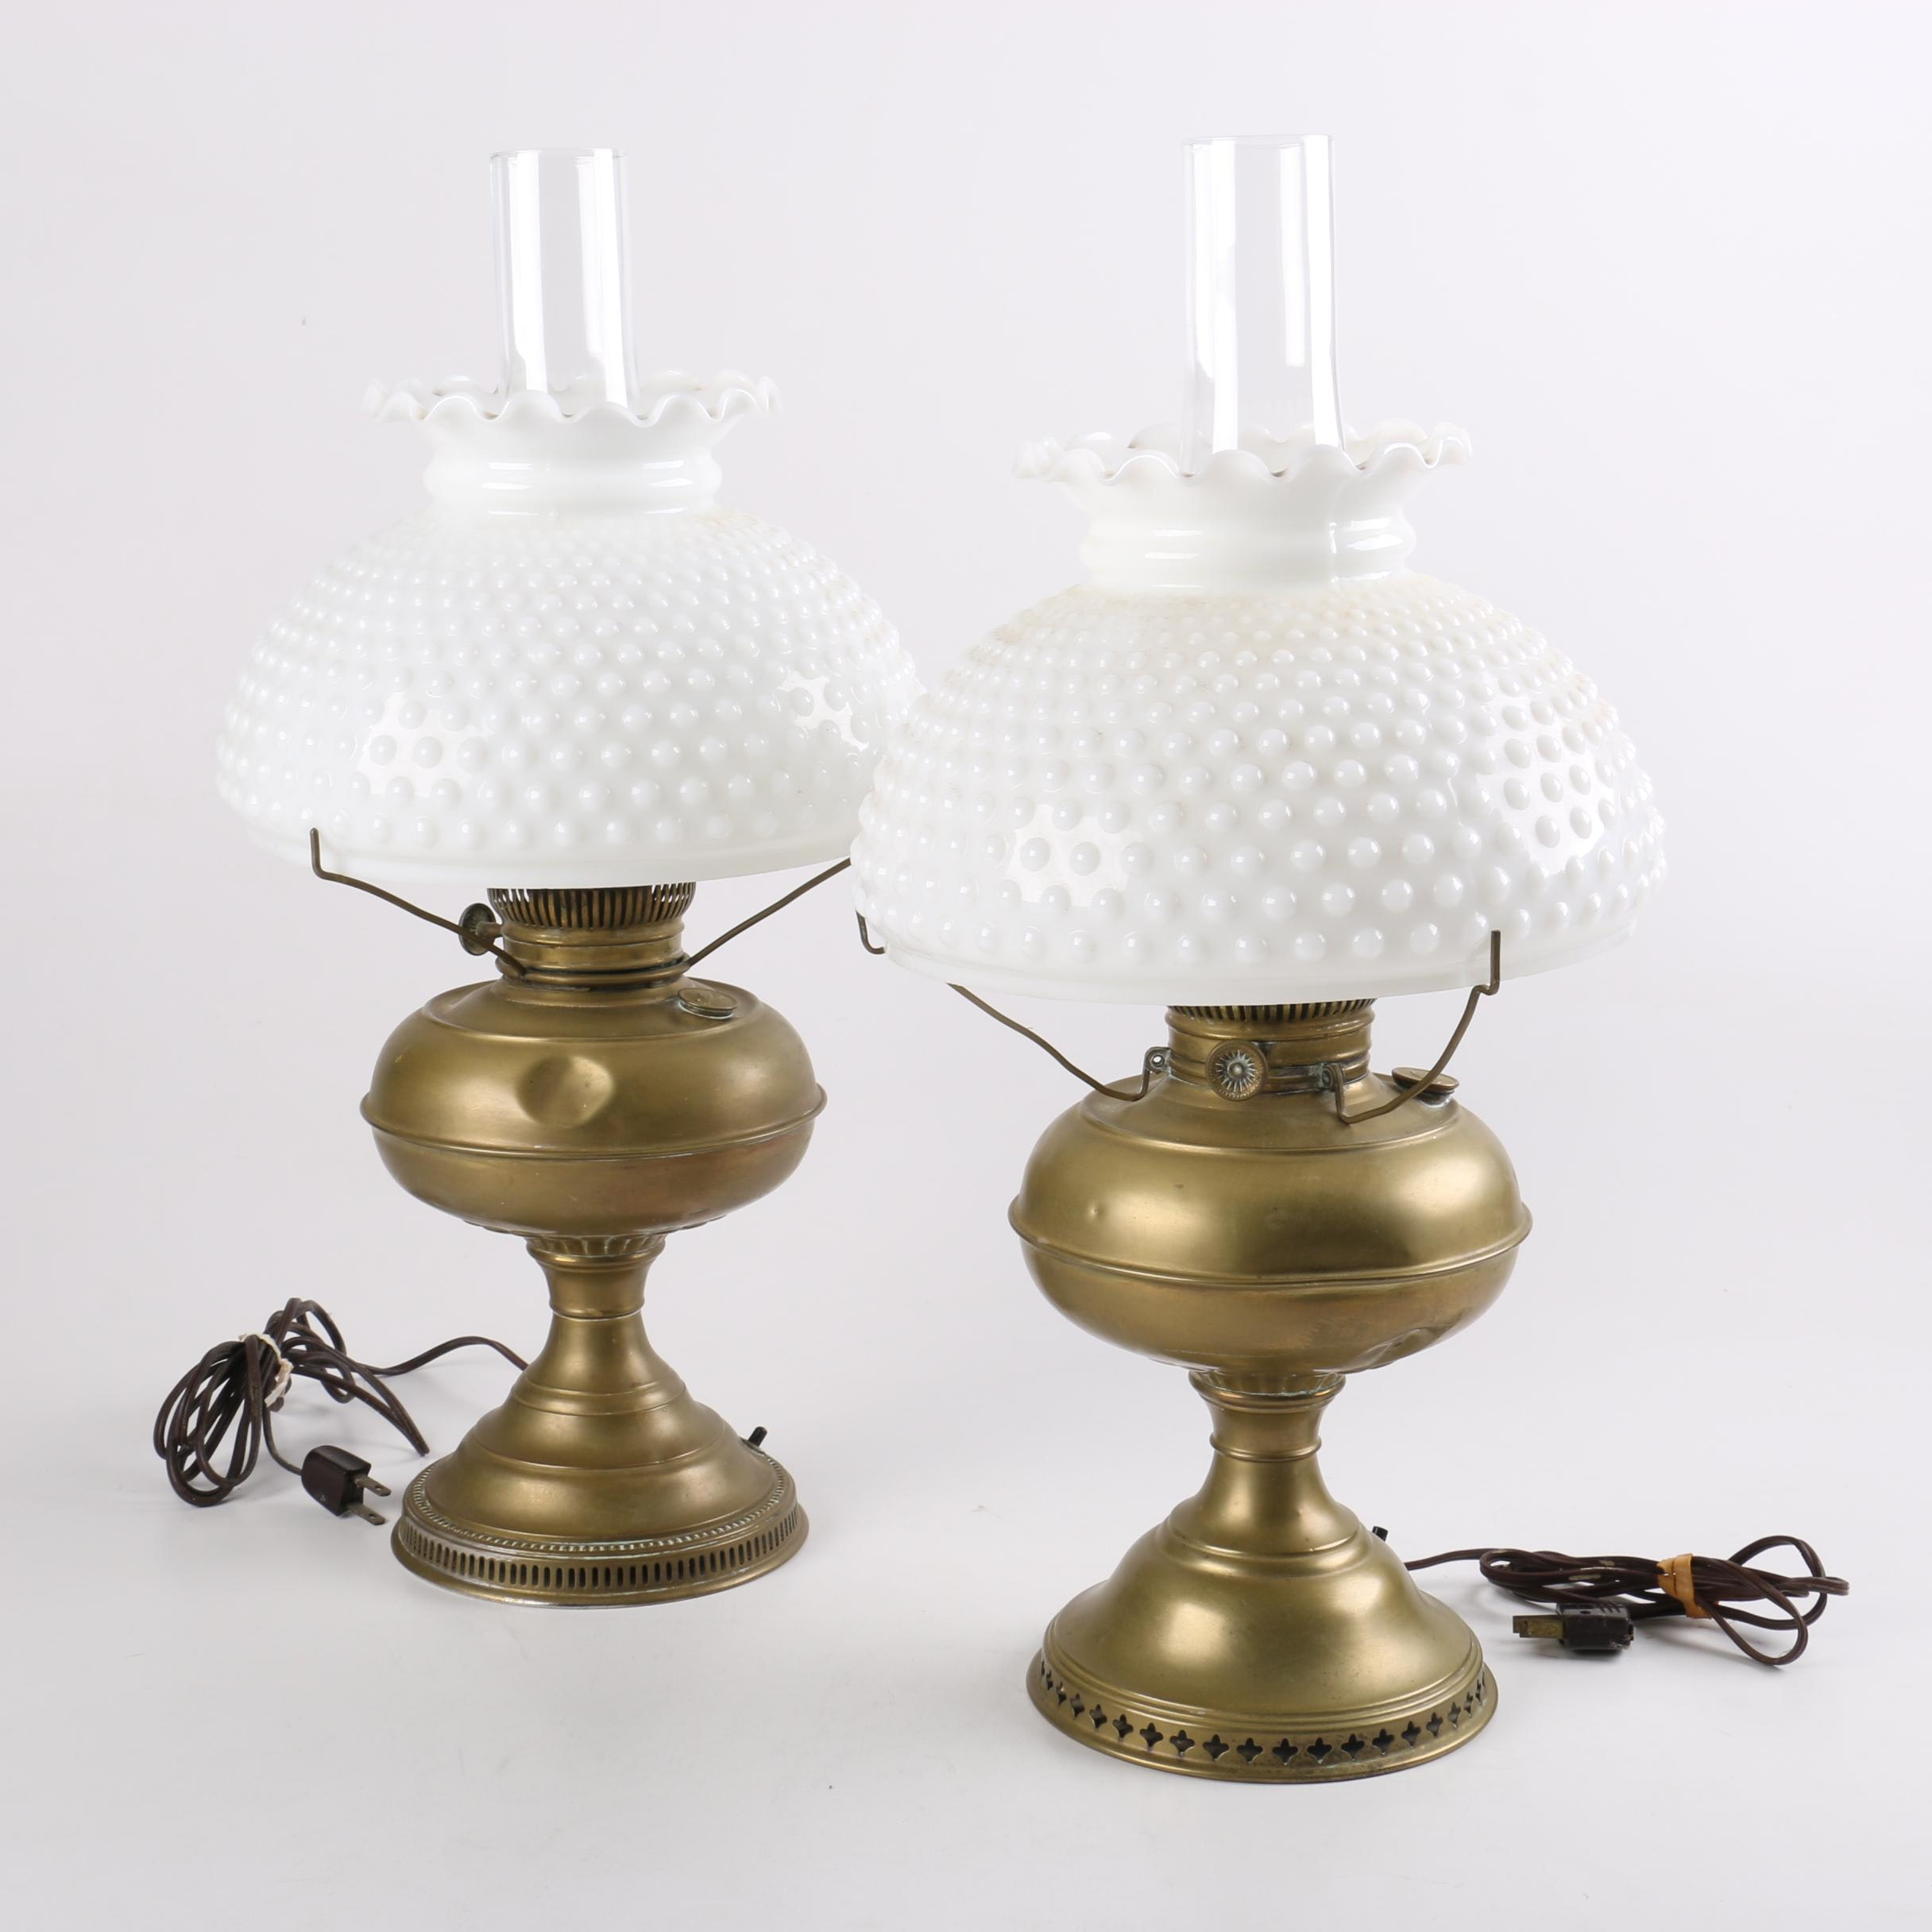 Brass Lamps with Fenton Style Glass Shades